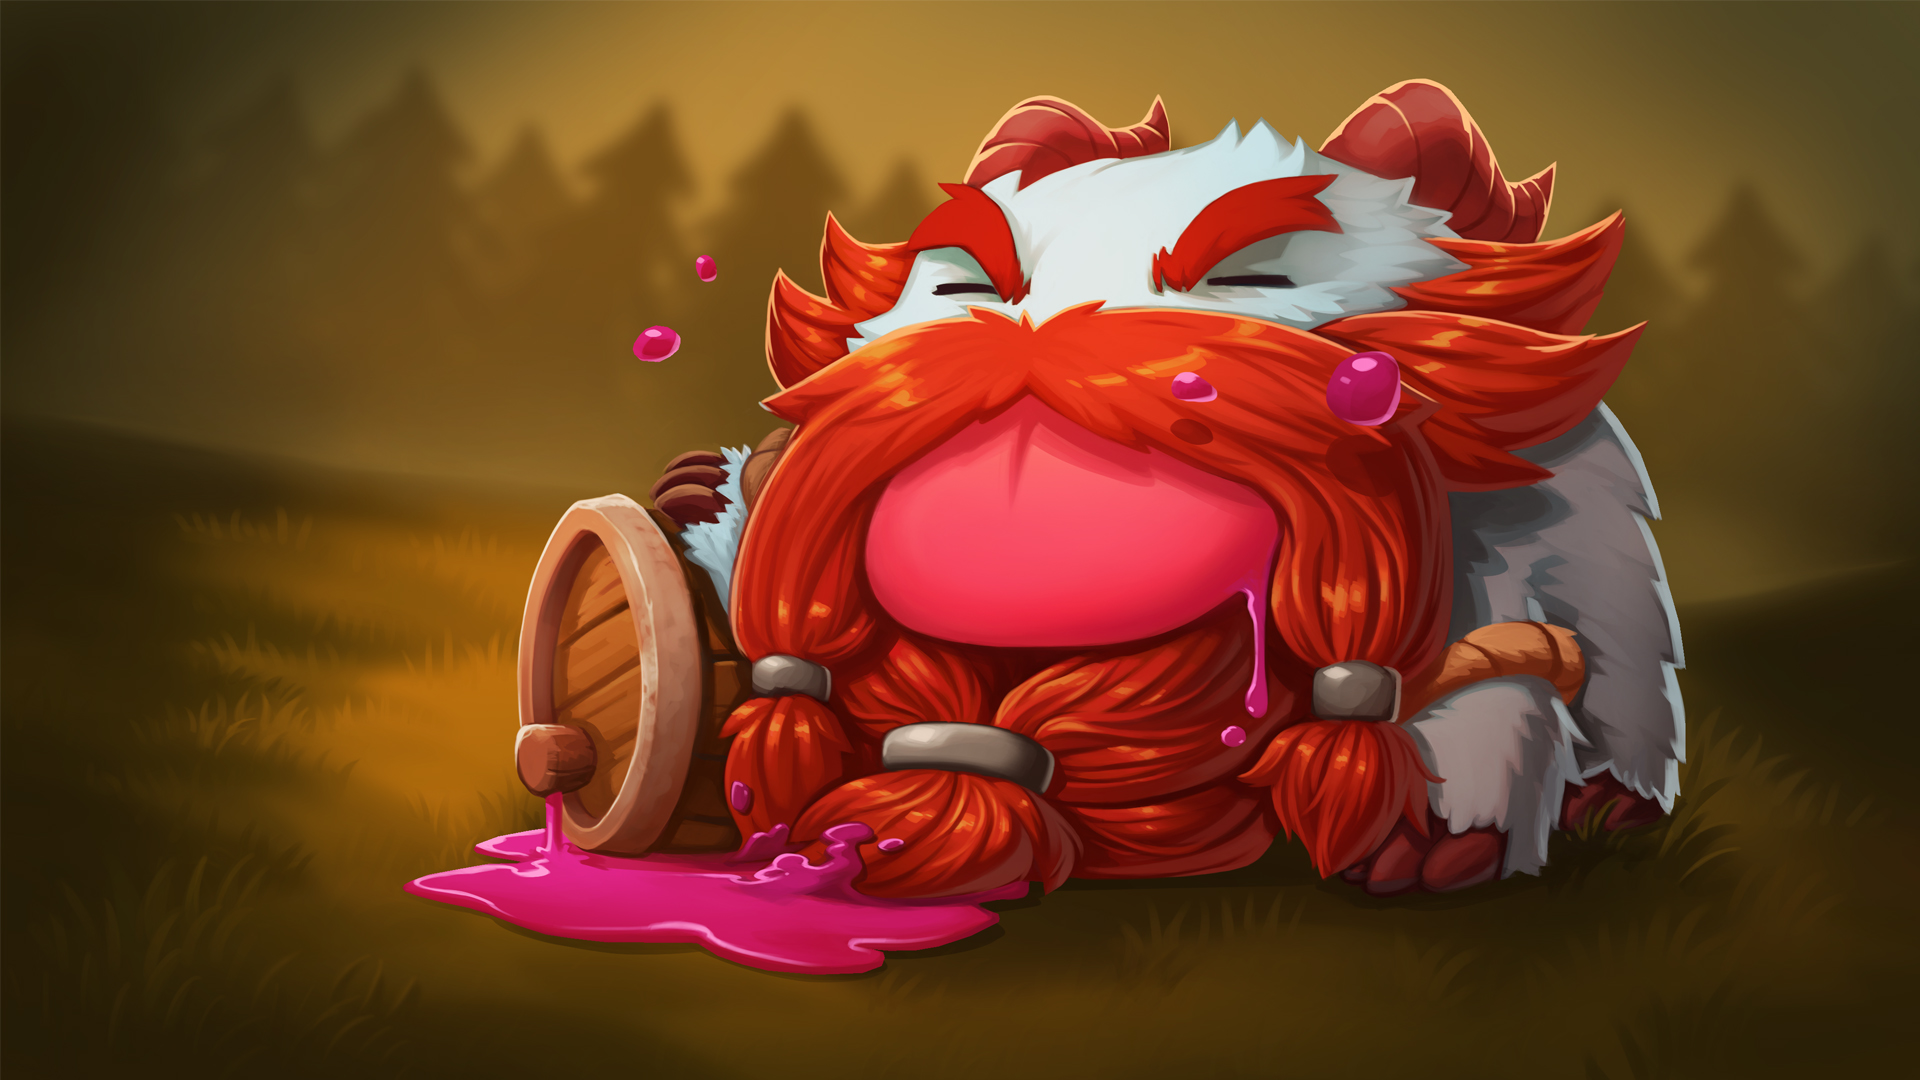 Gragas Poro   Wallpapers HD League Of Legends Wallpapers Art of LoL 1920x1080